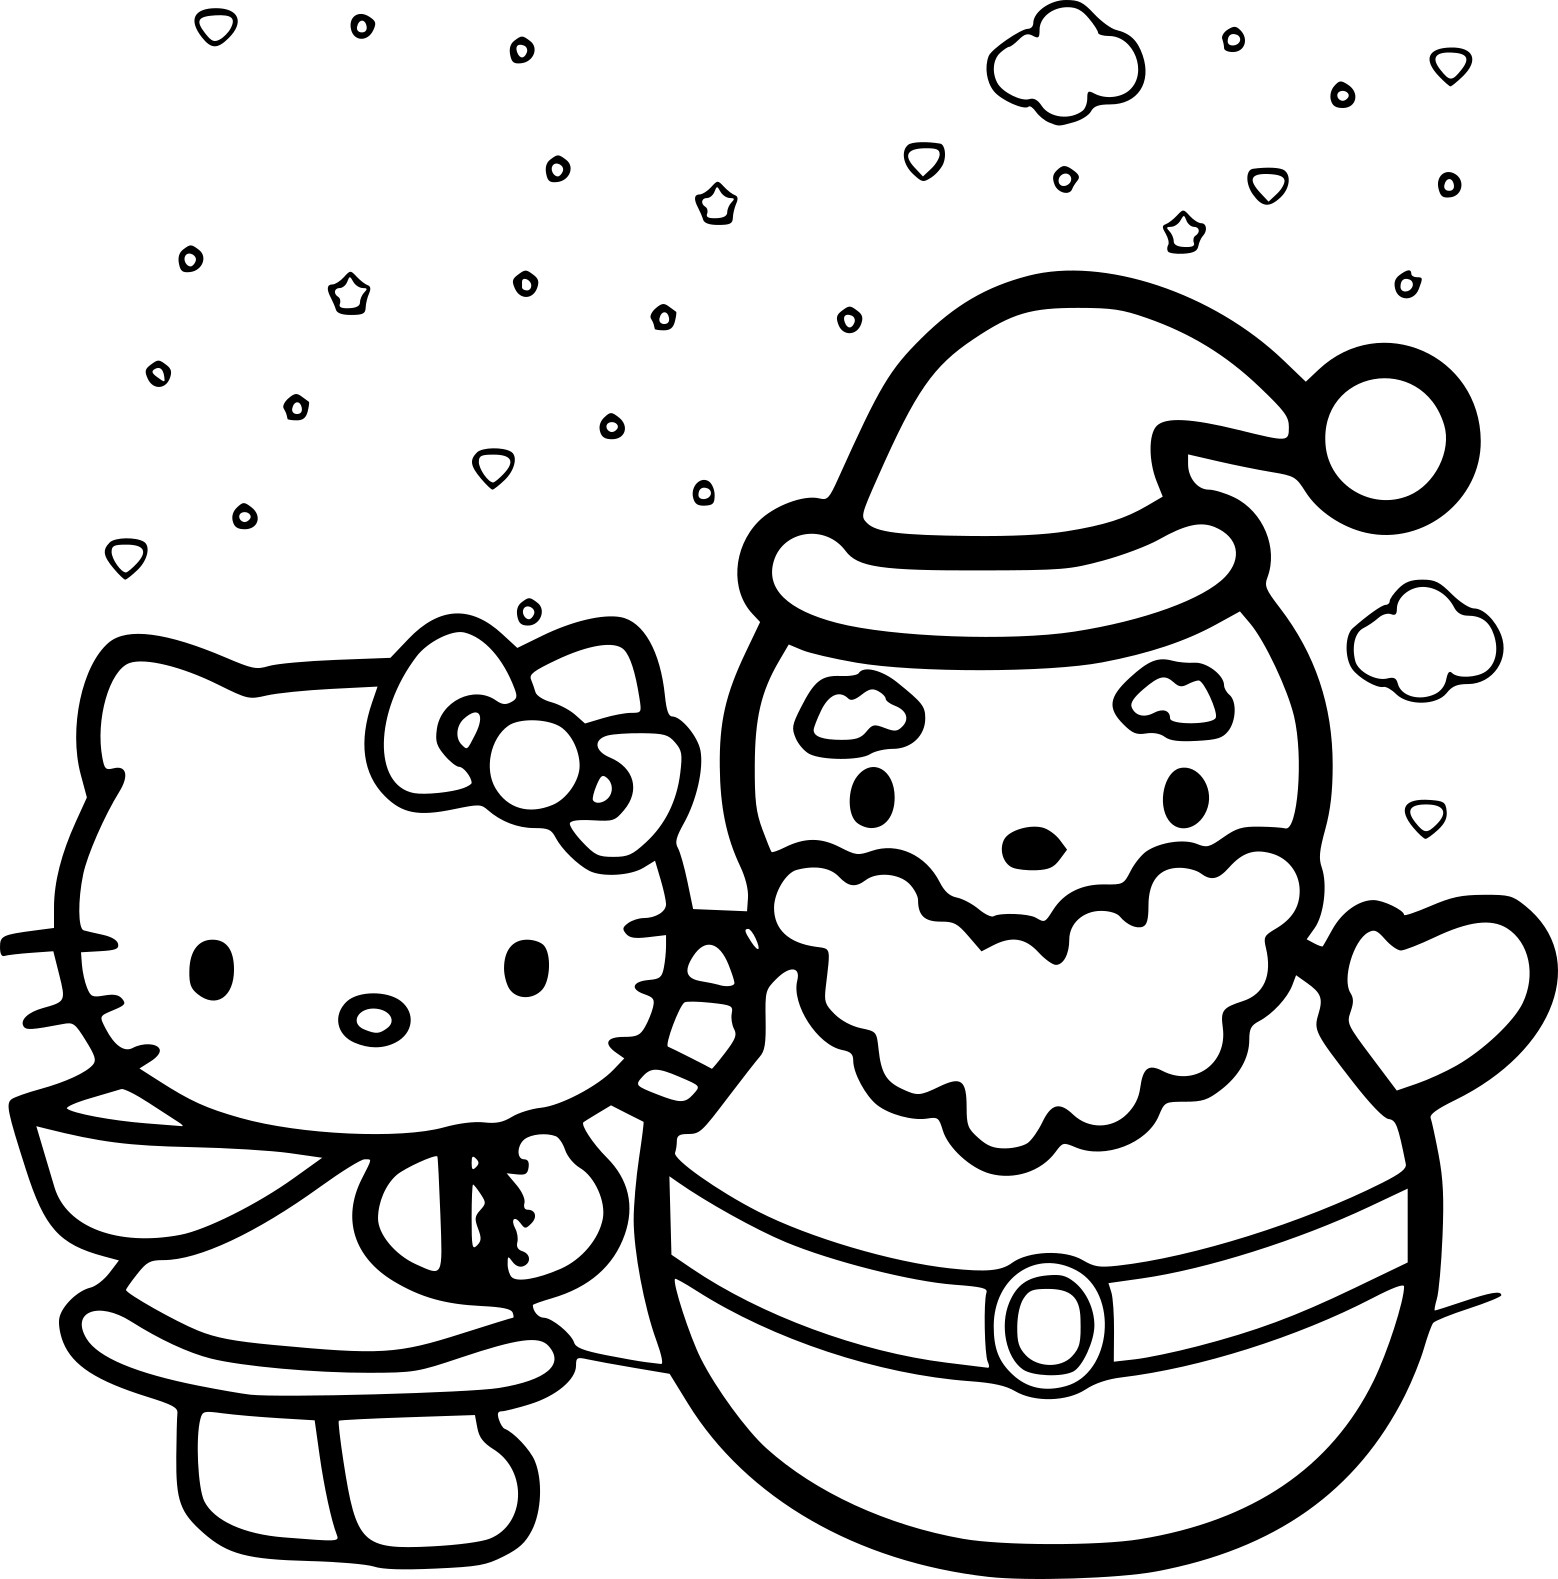 Coloriage Hello Kitty Noël À Imprimer serapportantà Hello Kitty À Dessiner